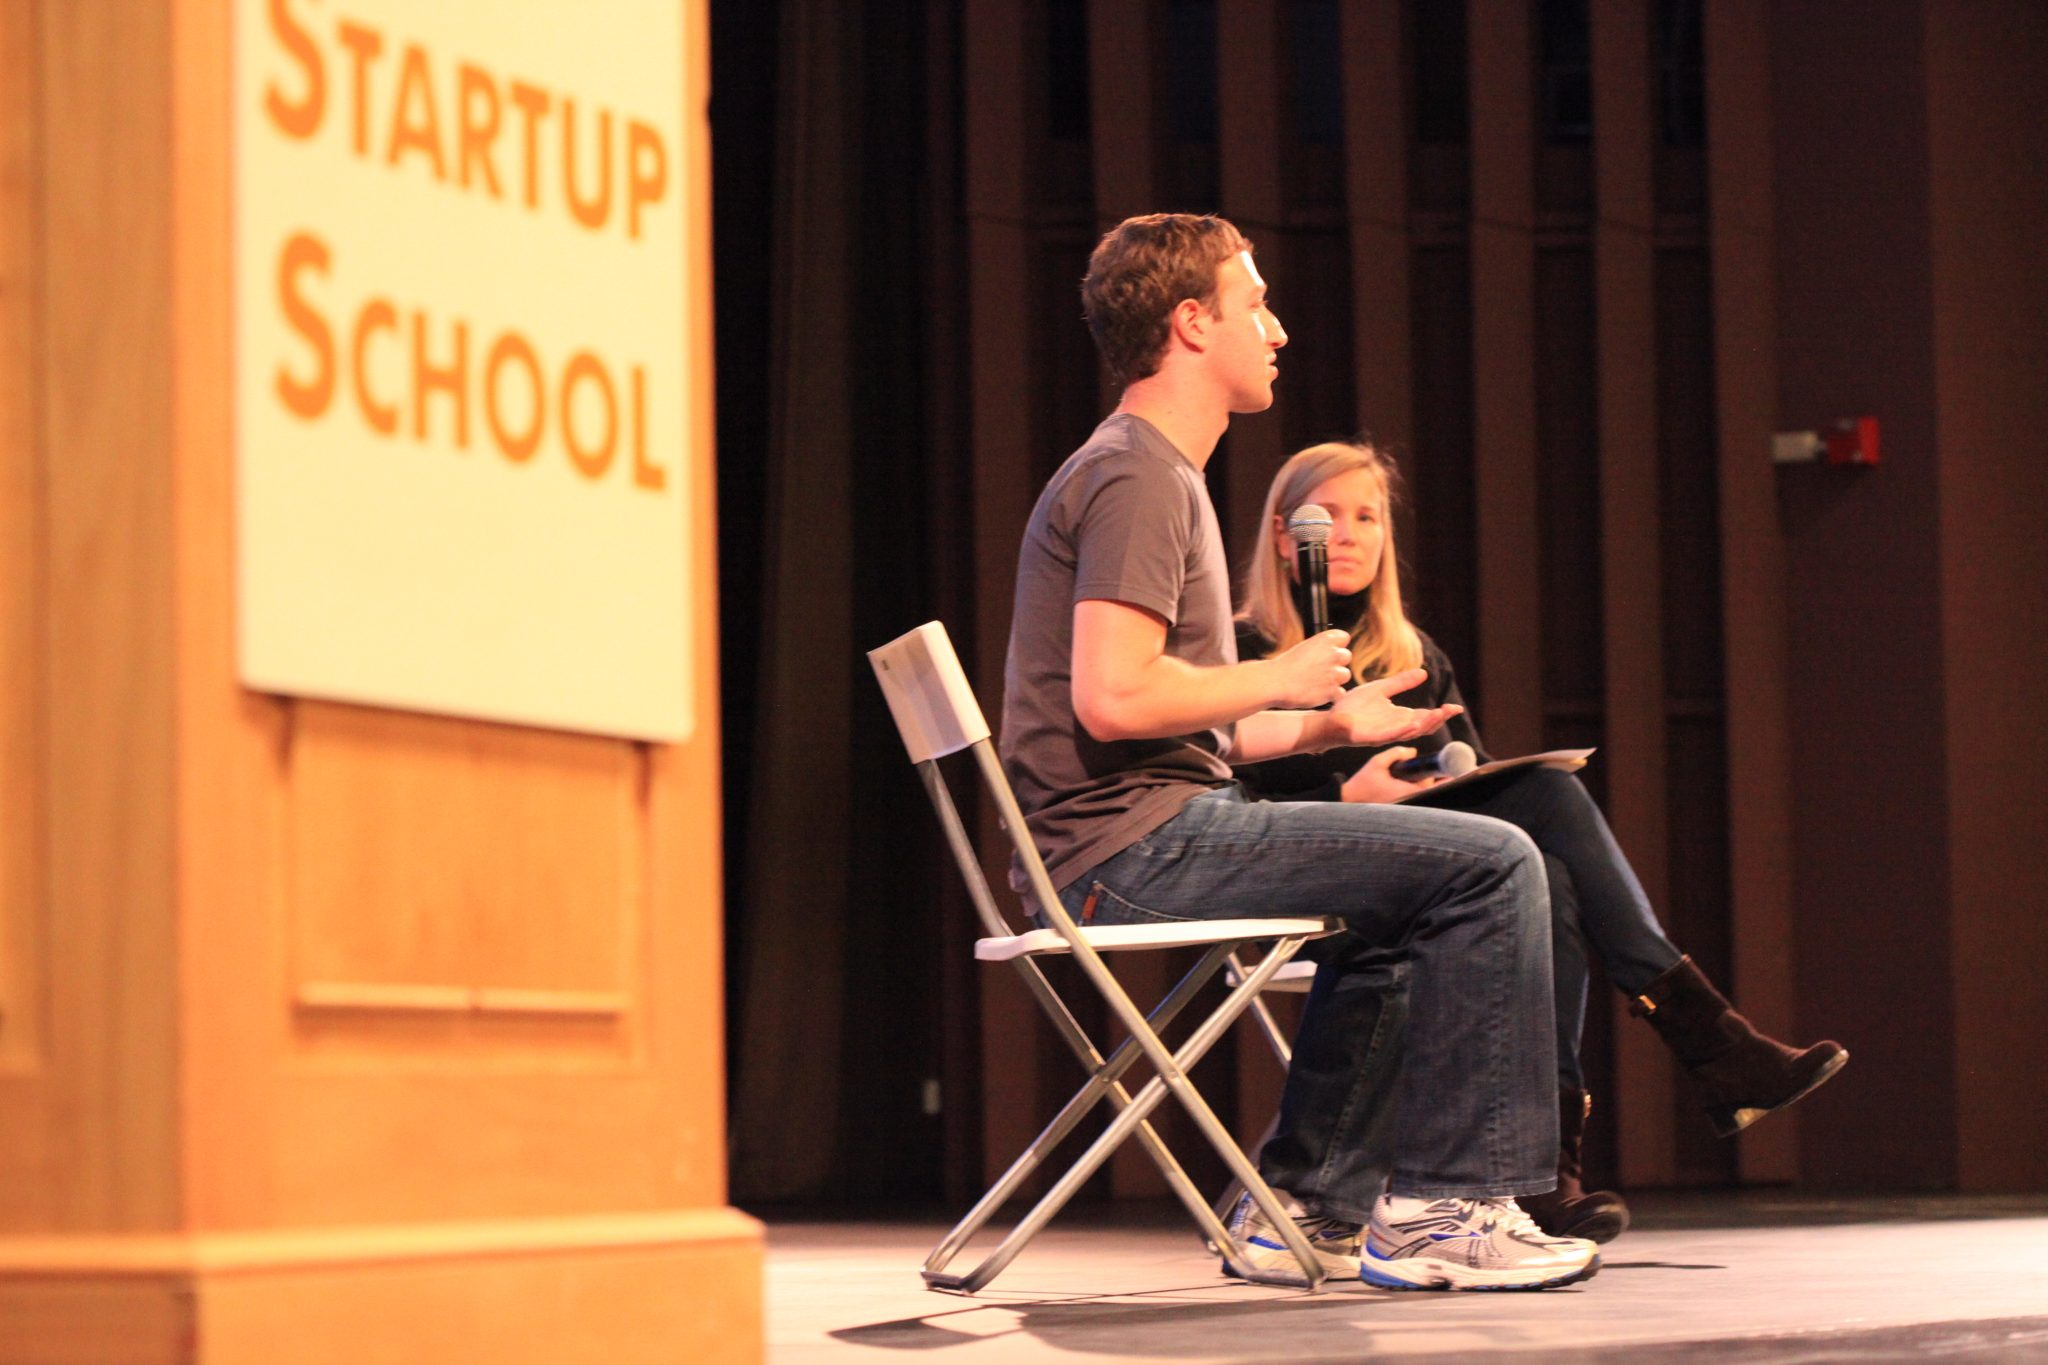 Y Combinator's Co-Founder Now Taking Applications For Startup School 2013 – Its Free